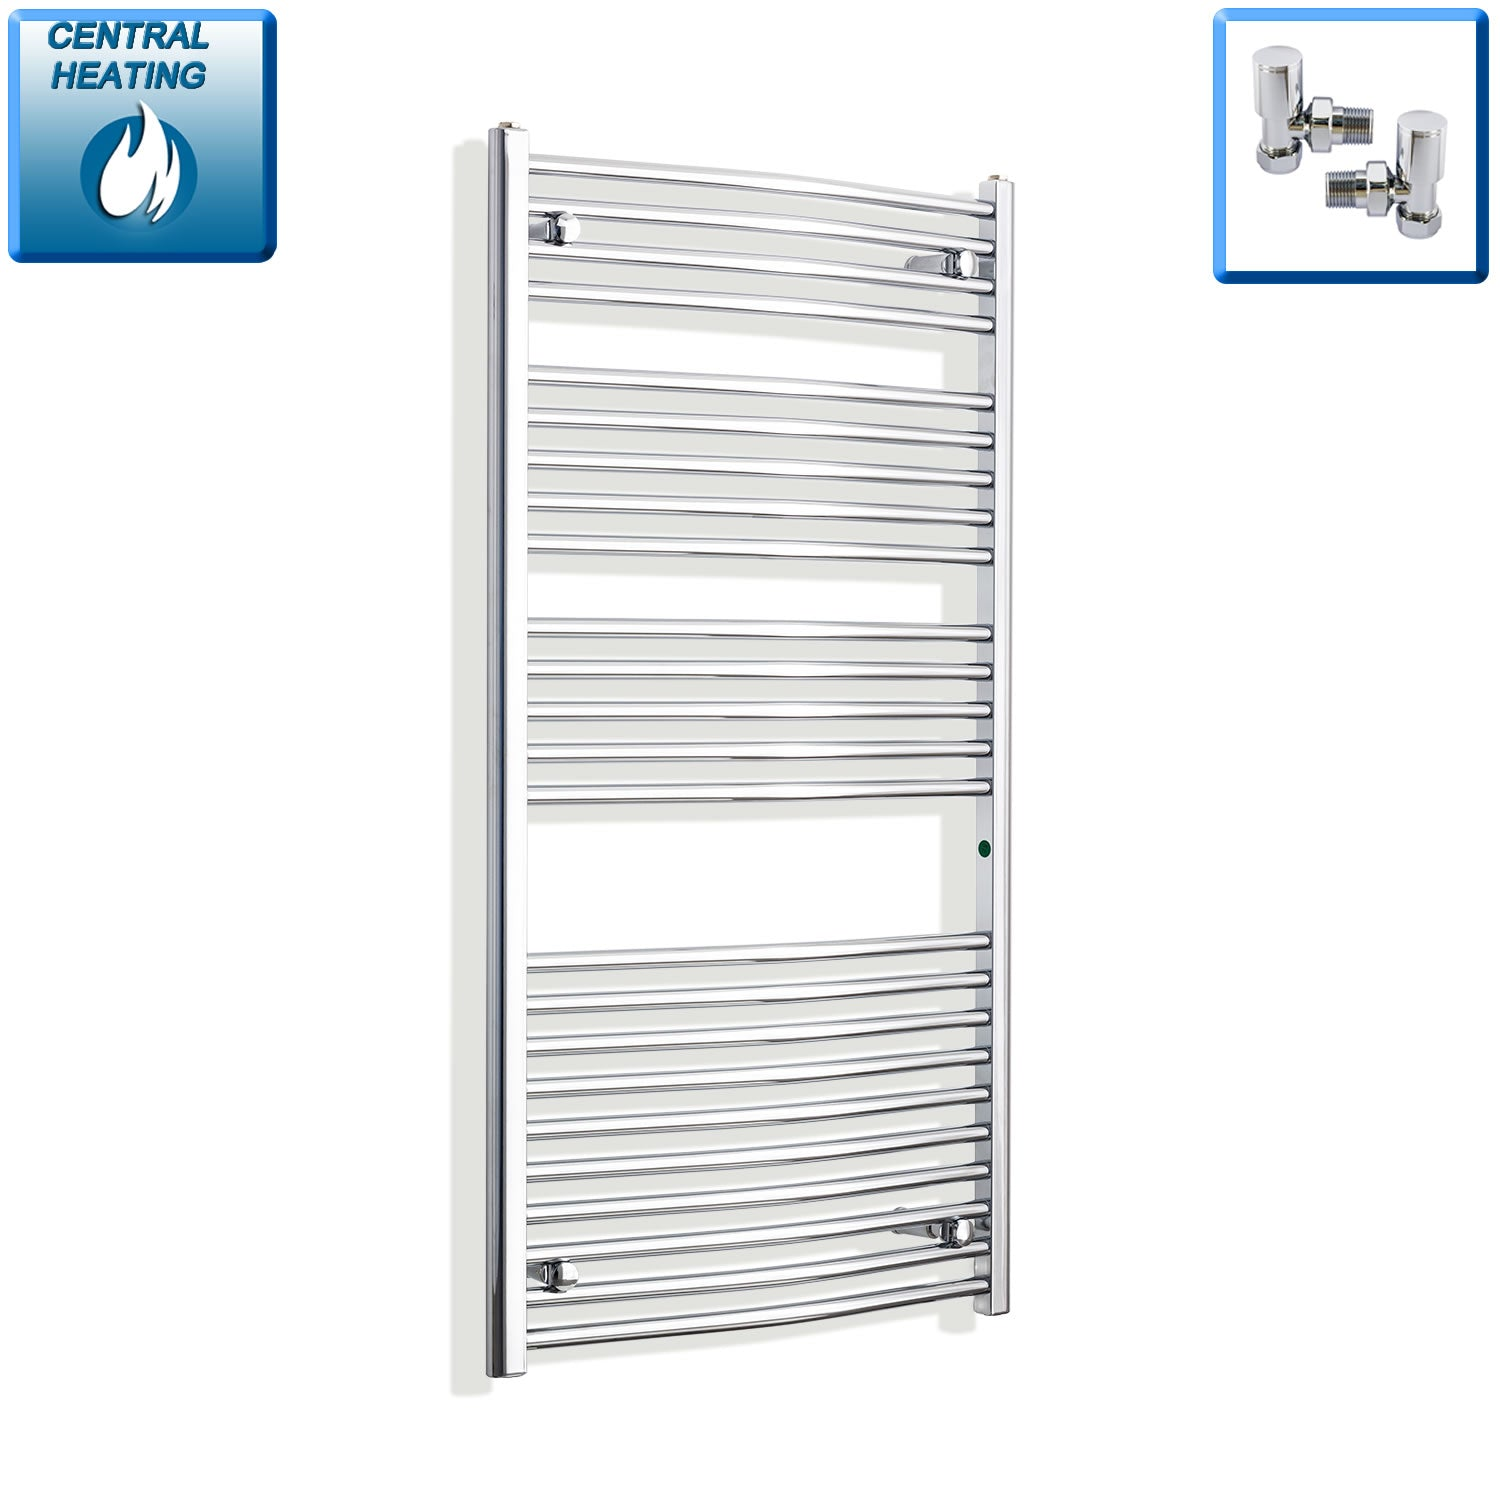 700mm Wide 1300mm High Chrome Towel Rail Radiator With Angled Valve